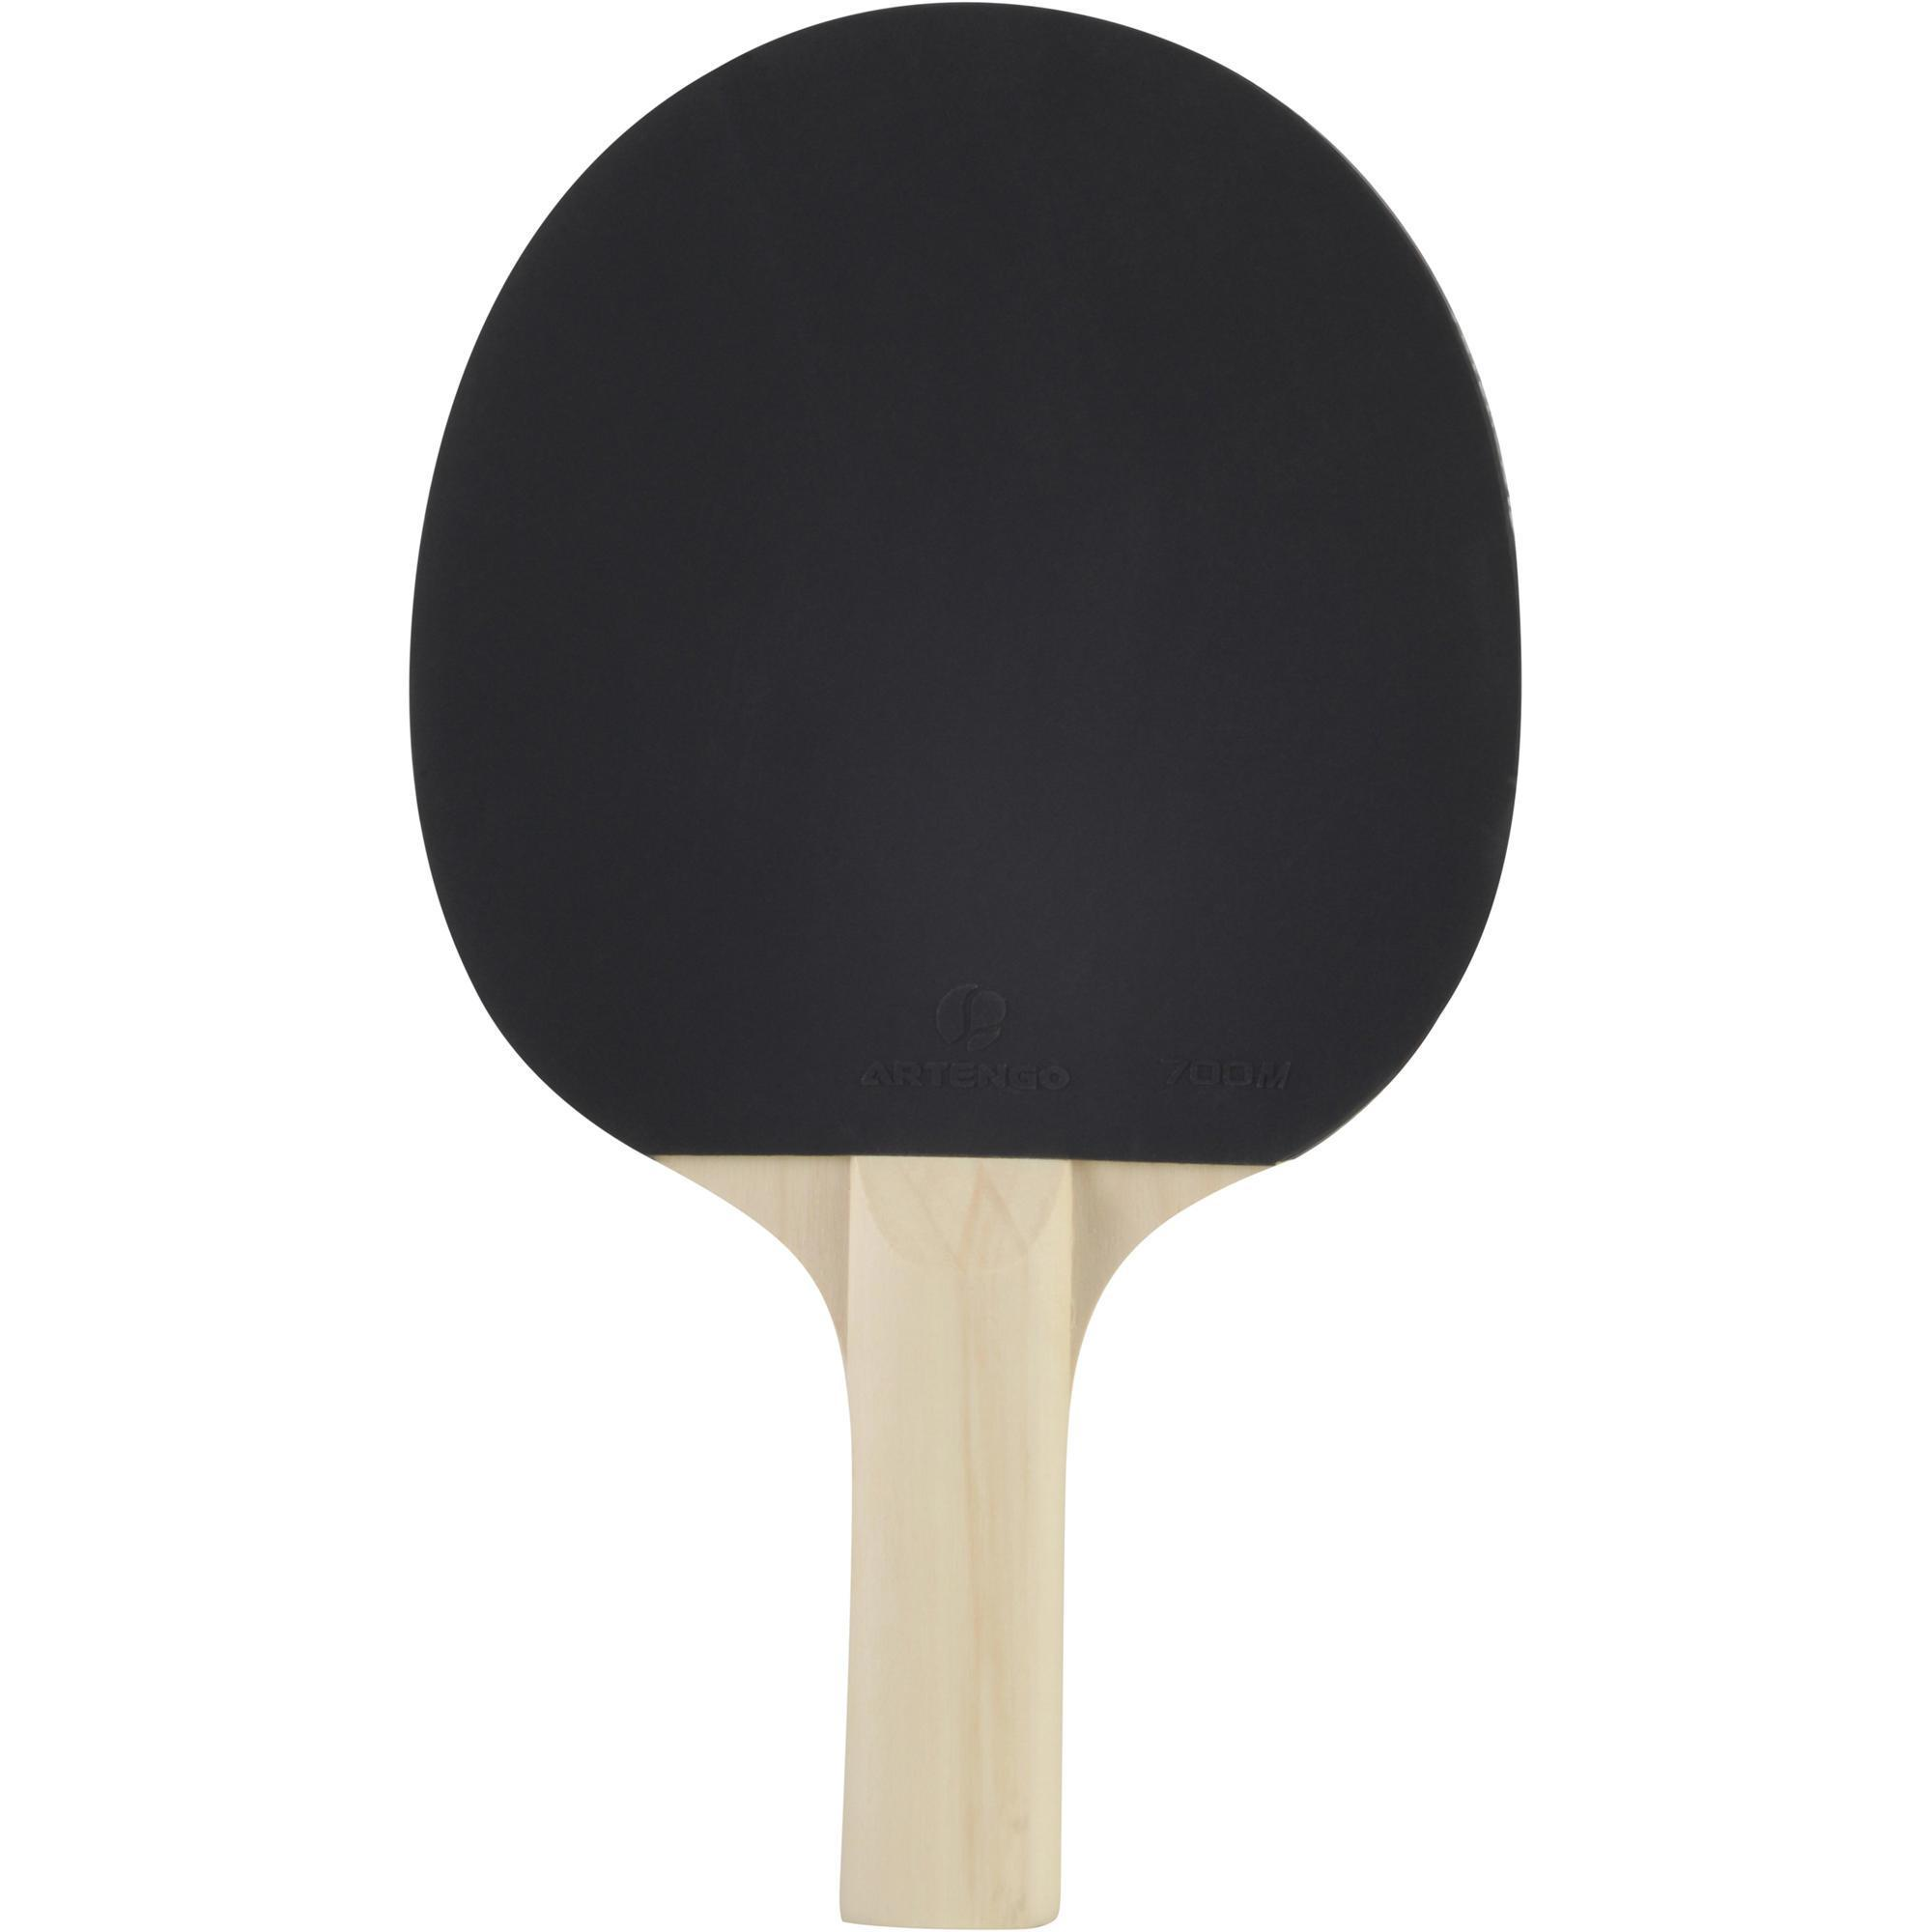 Raquette ping pong fr 700 tennis de table artengo - Revetement de raquette de tennis de table ...